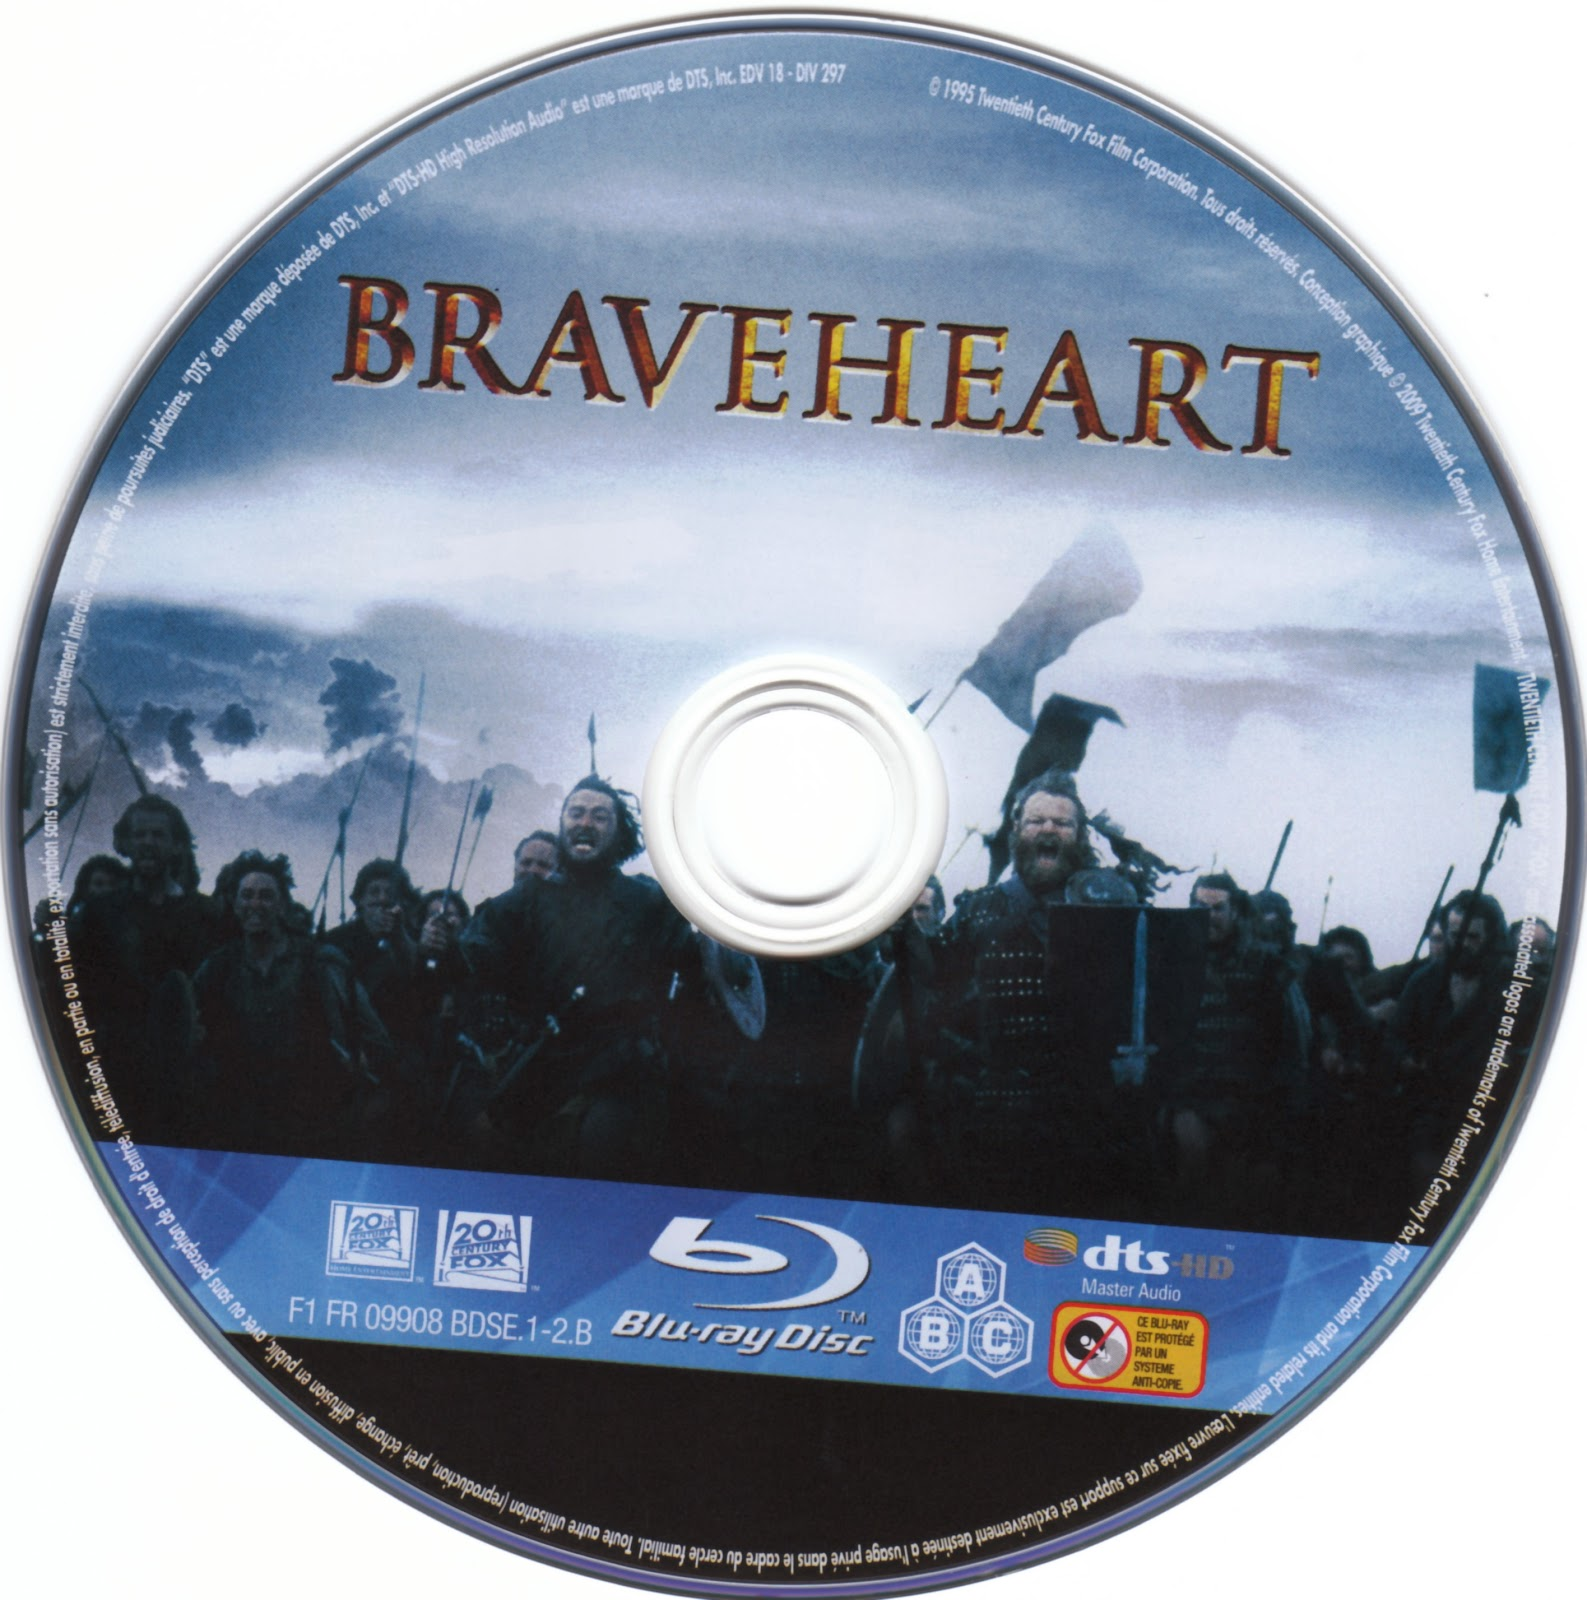 Braveheart Dvd Label